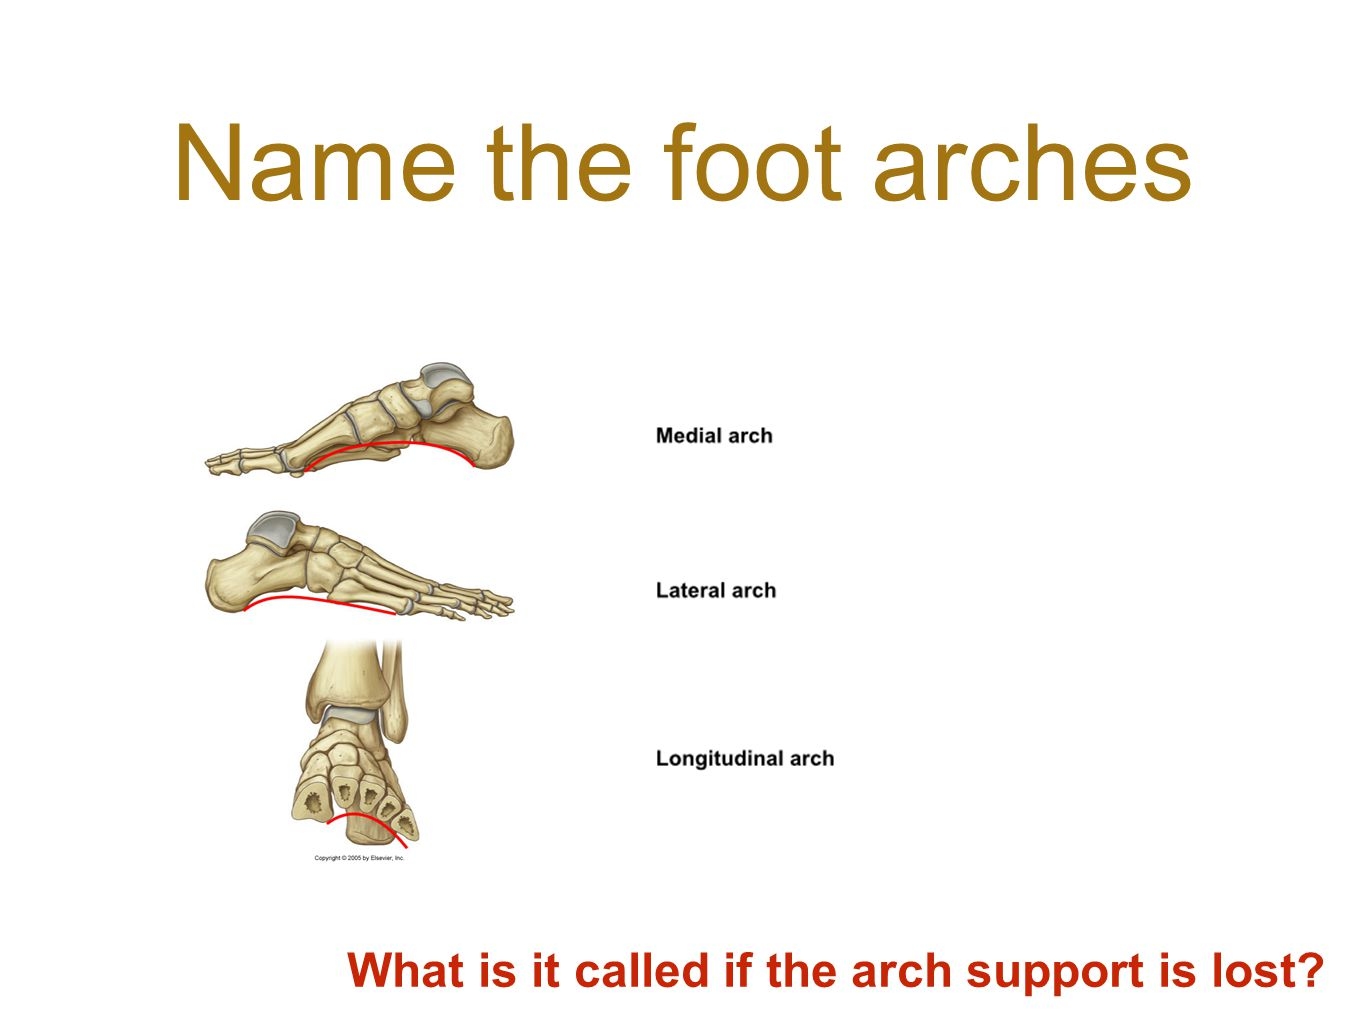 Name the foot arches What is it called if the arch support is lost?